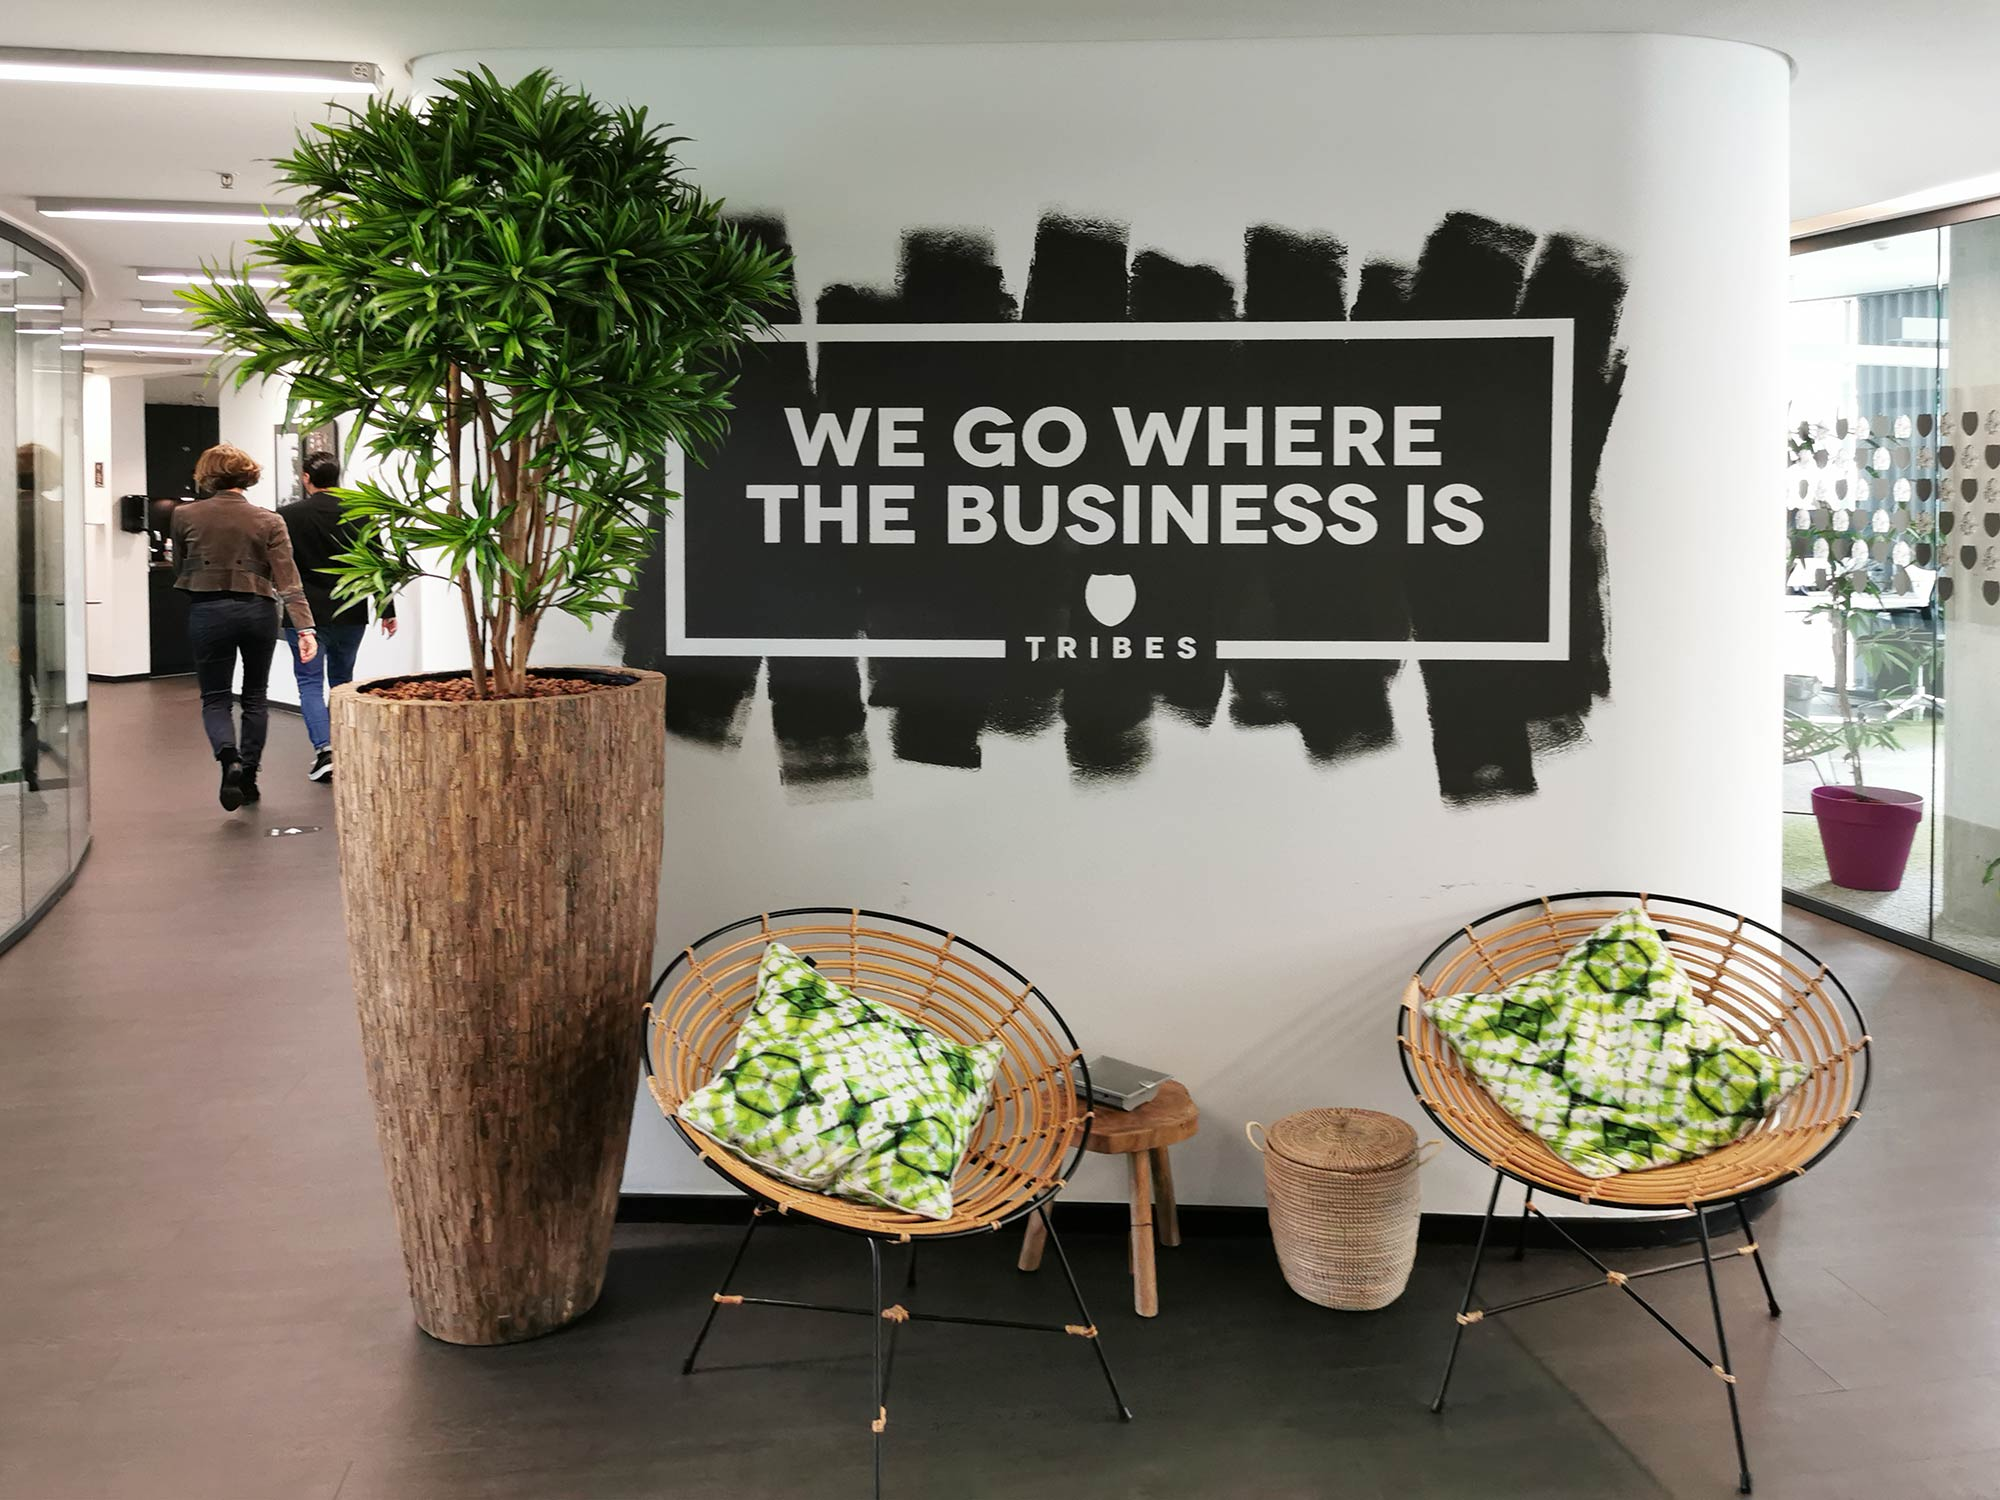 Tribes - We go where the business is